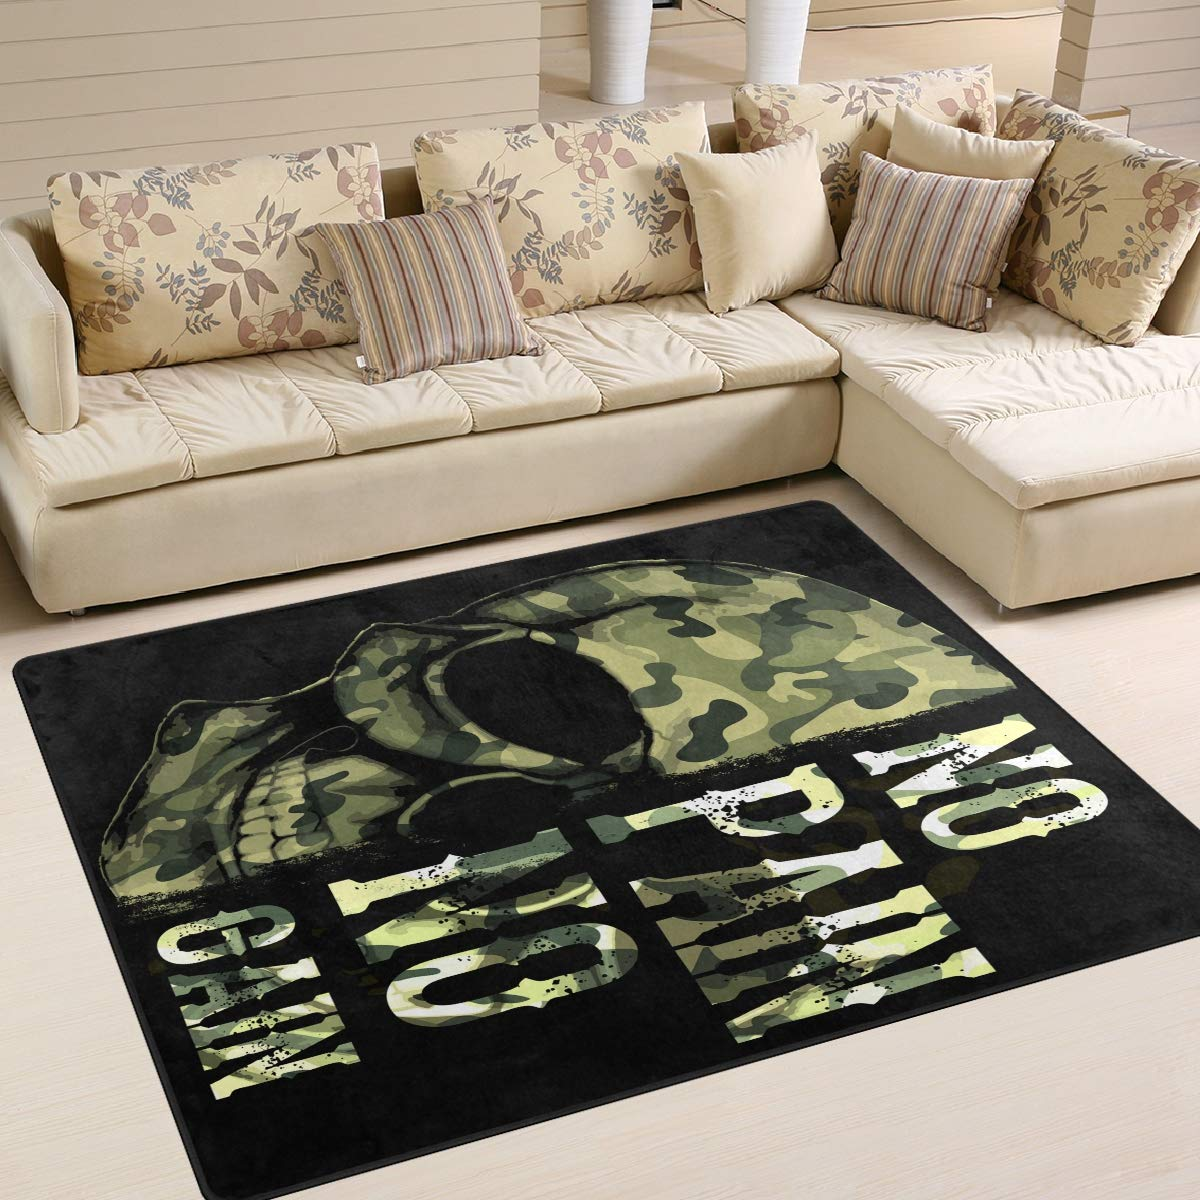 ALAZA Home Decoration Camo Skull with Quote No Pain Gain Large Rug Floor Carpet Yoga Mat, Modern Area Rug for Children Kid Playroom Bedroom, 5' x 7'